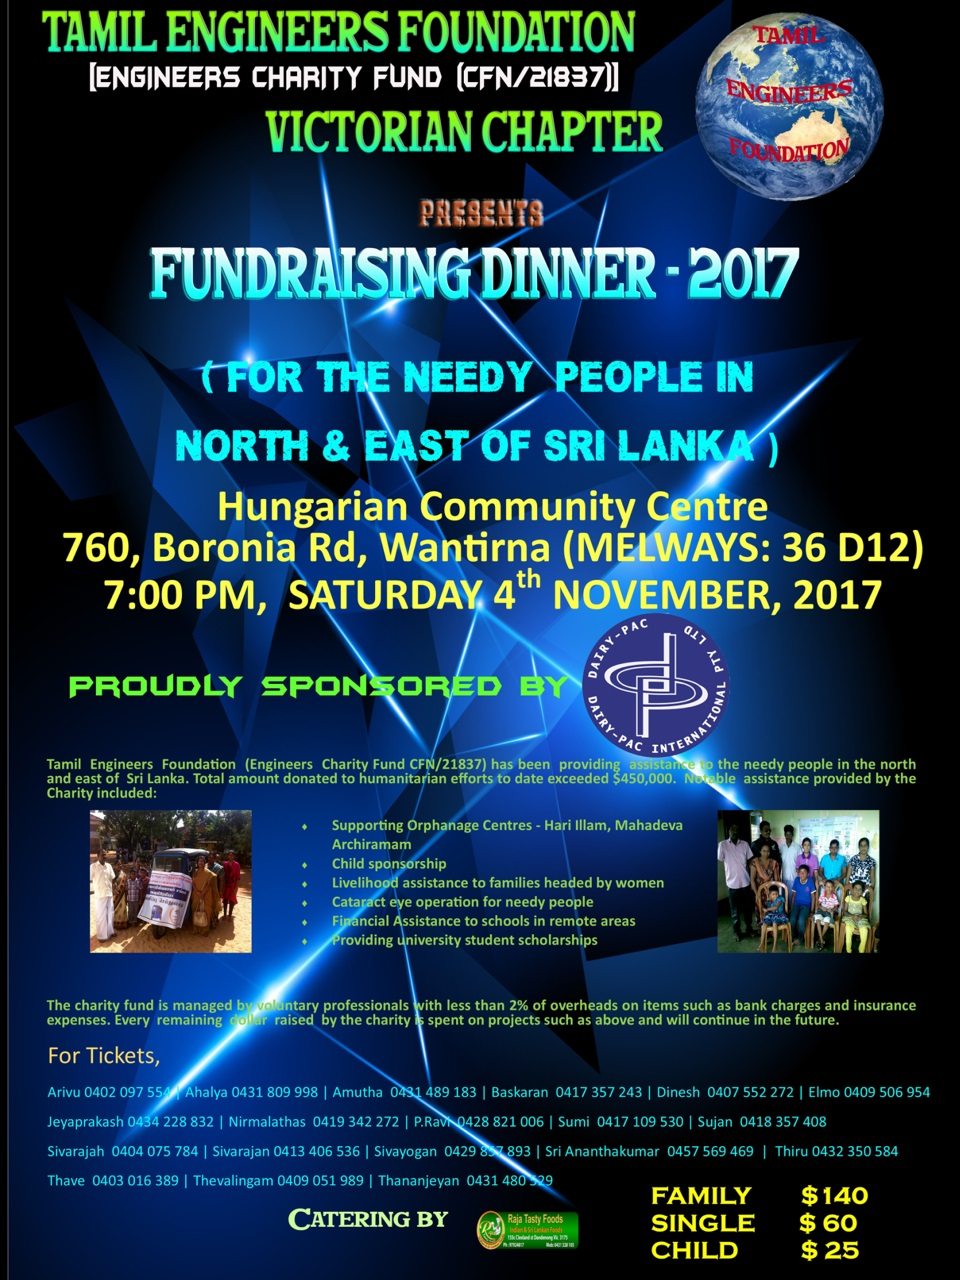 Victorian Chapter Fundraising Dinner 2017